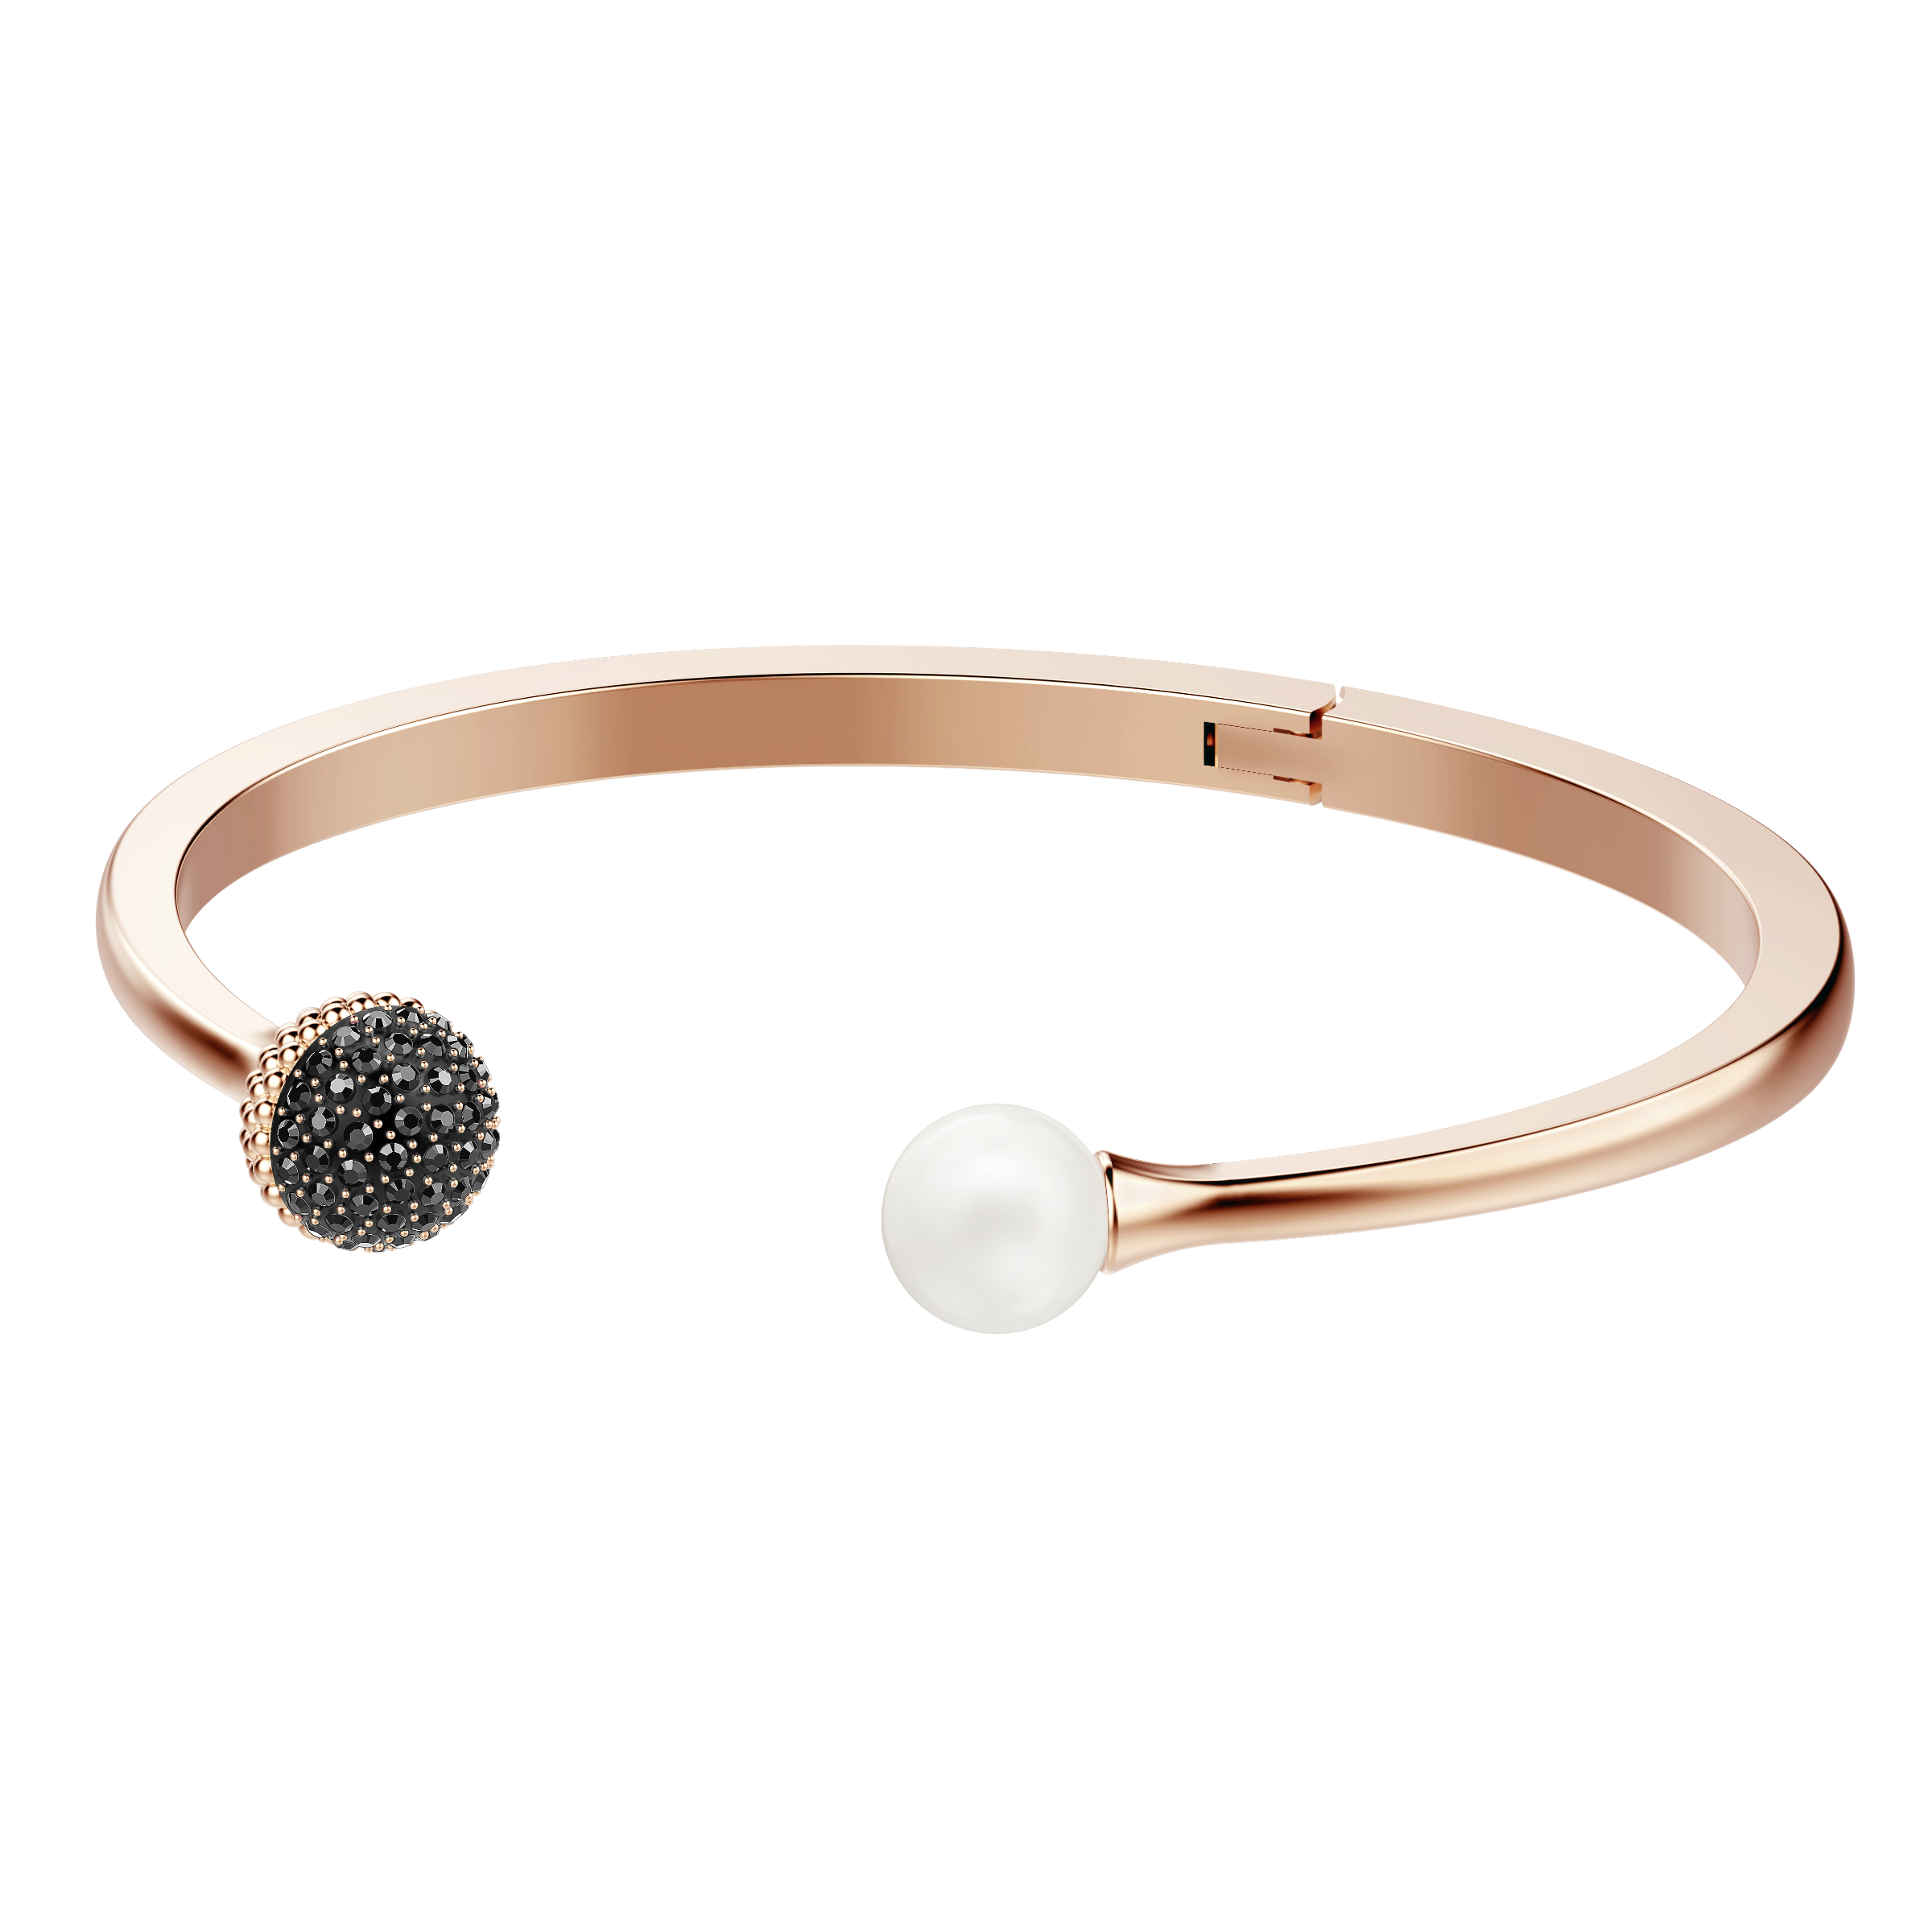 Lollypop Bangle, Multi-colored, Rose-gold tone plated